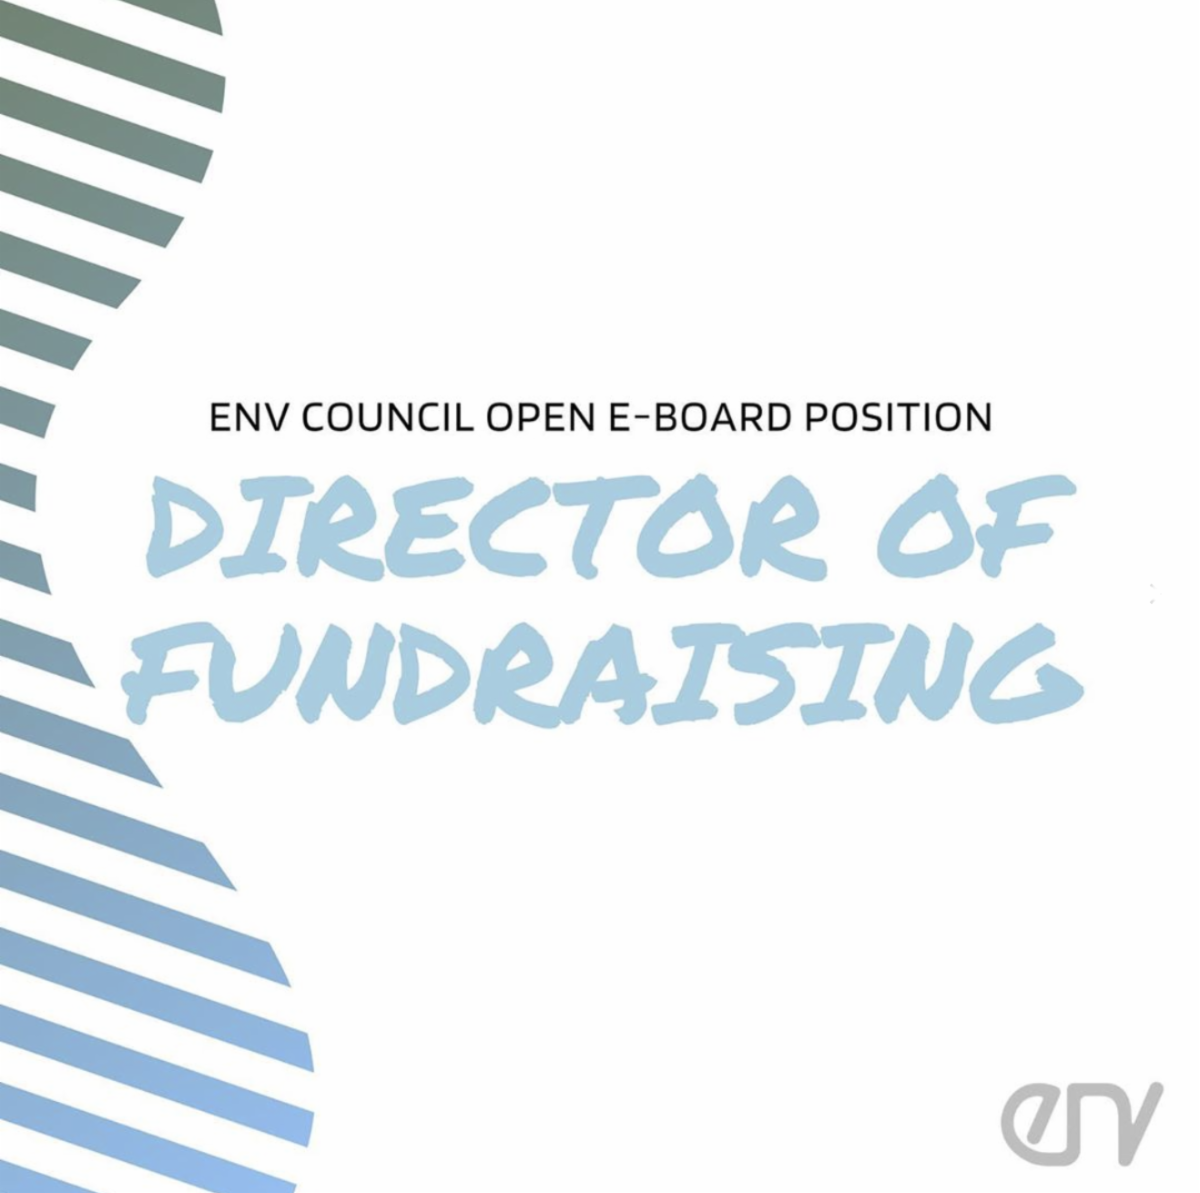 env council director of fundraiser wanted